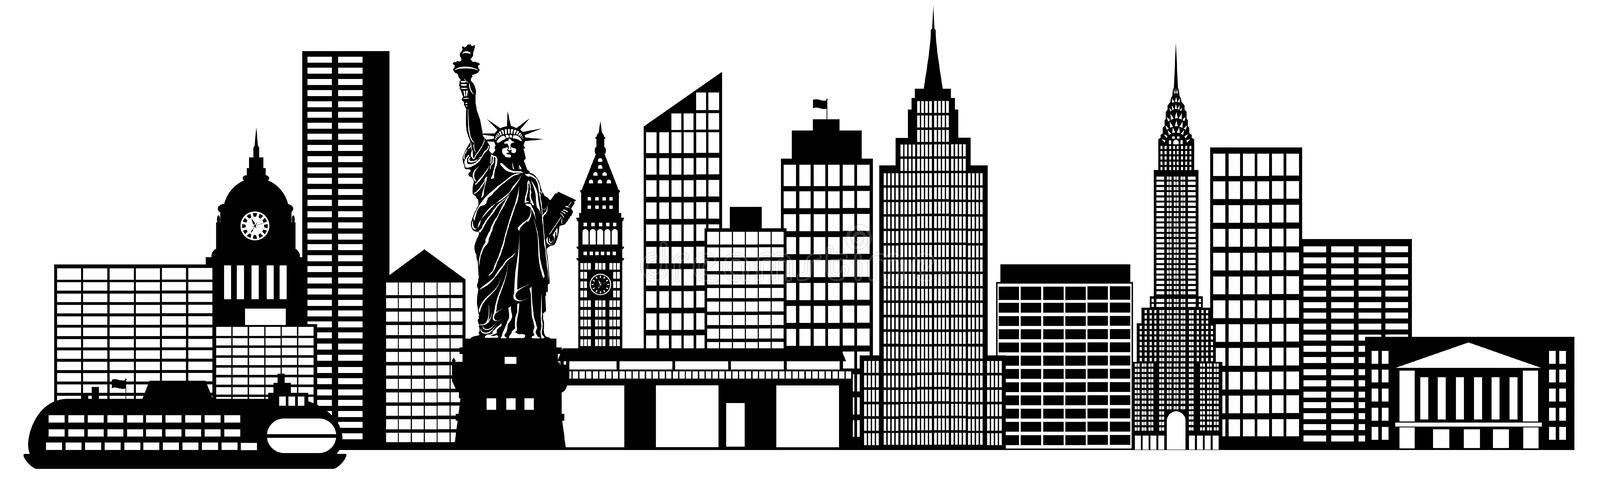 new york city skyline panorama clip art stock illustration rh dreamstime com new york city buildings clipart new york city skyline clipart free